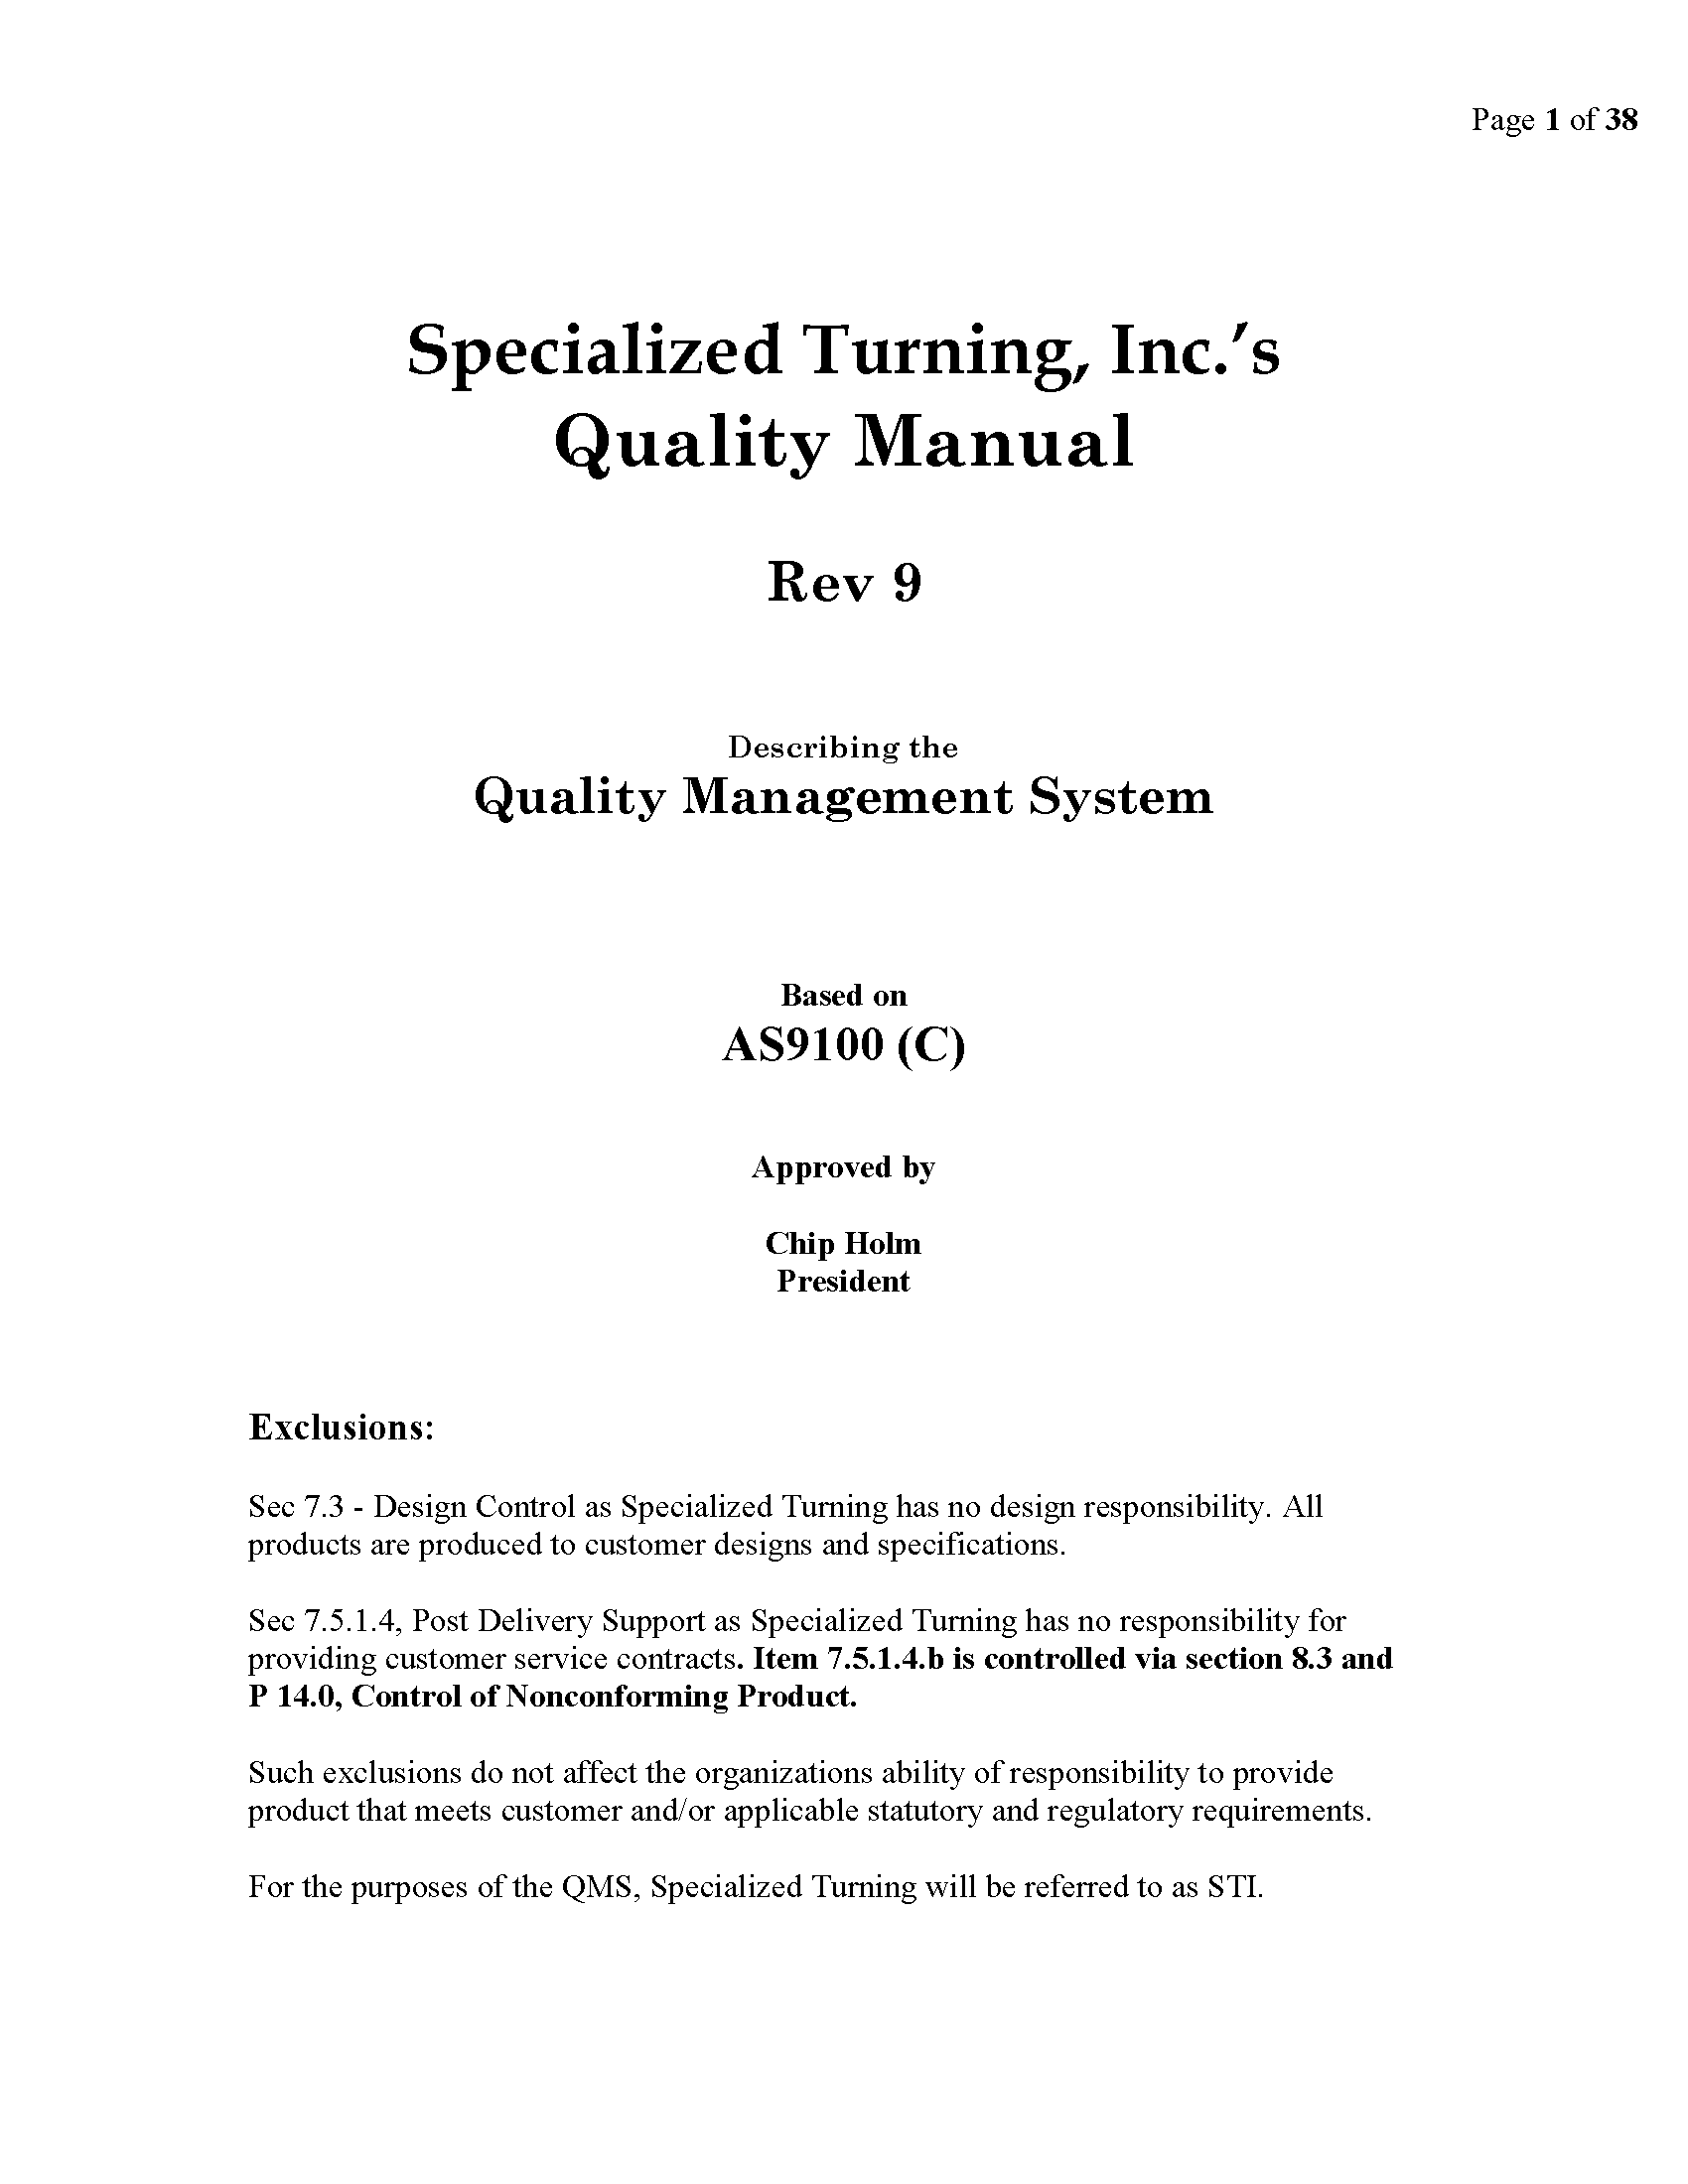 Specialized Turning QM For Website_Page_01